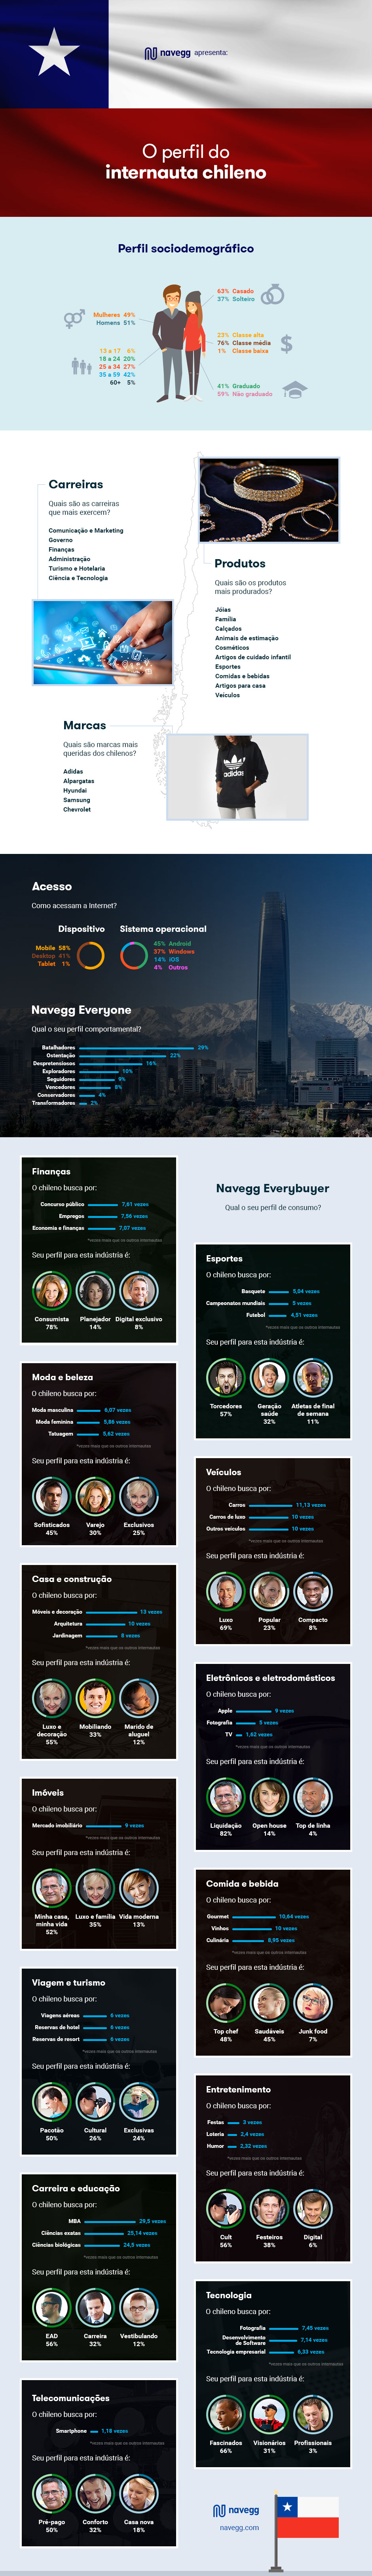 navegg-infografico-perfil-do-internauta-chileno